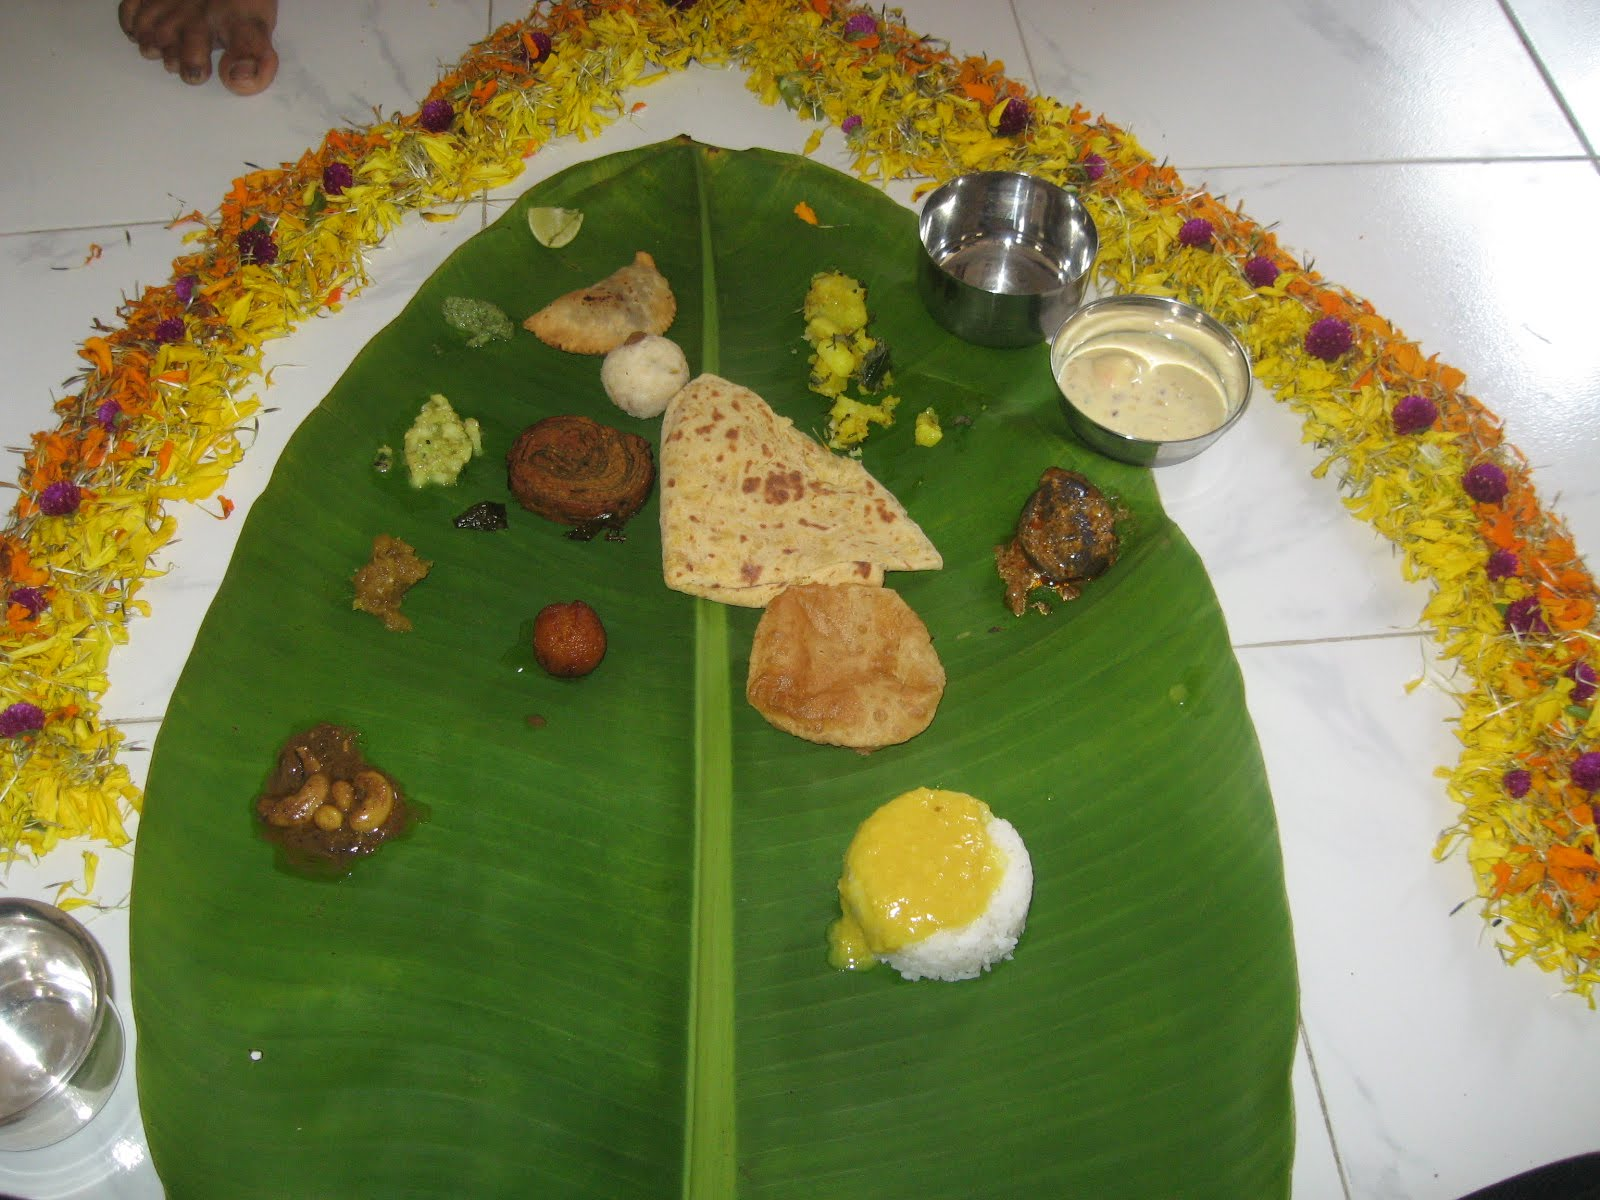 Traditional way to serve lunch/dinner during festival time or function like \ Puja\ Marriage.Banana leaf is use as plate to serve food during auspicious ... & Harshad prabhudesai \u0027s Blogs: Banana leaf is use as plate to serve food